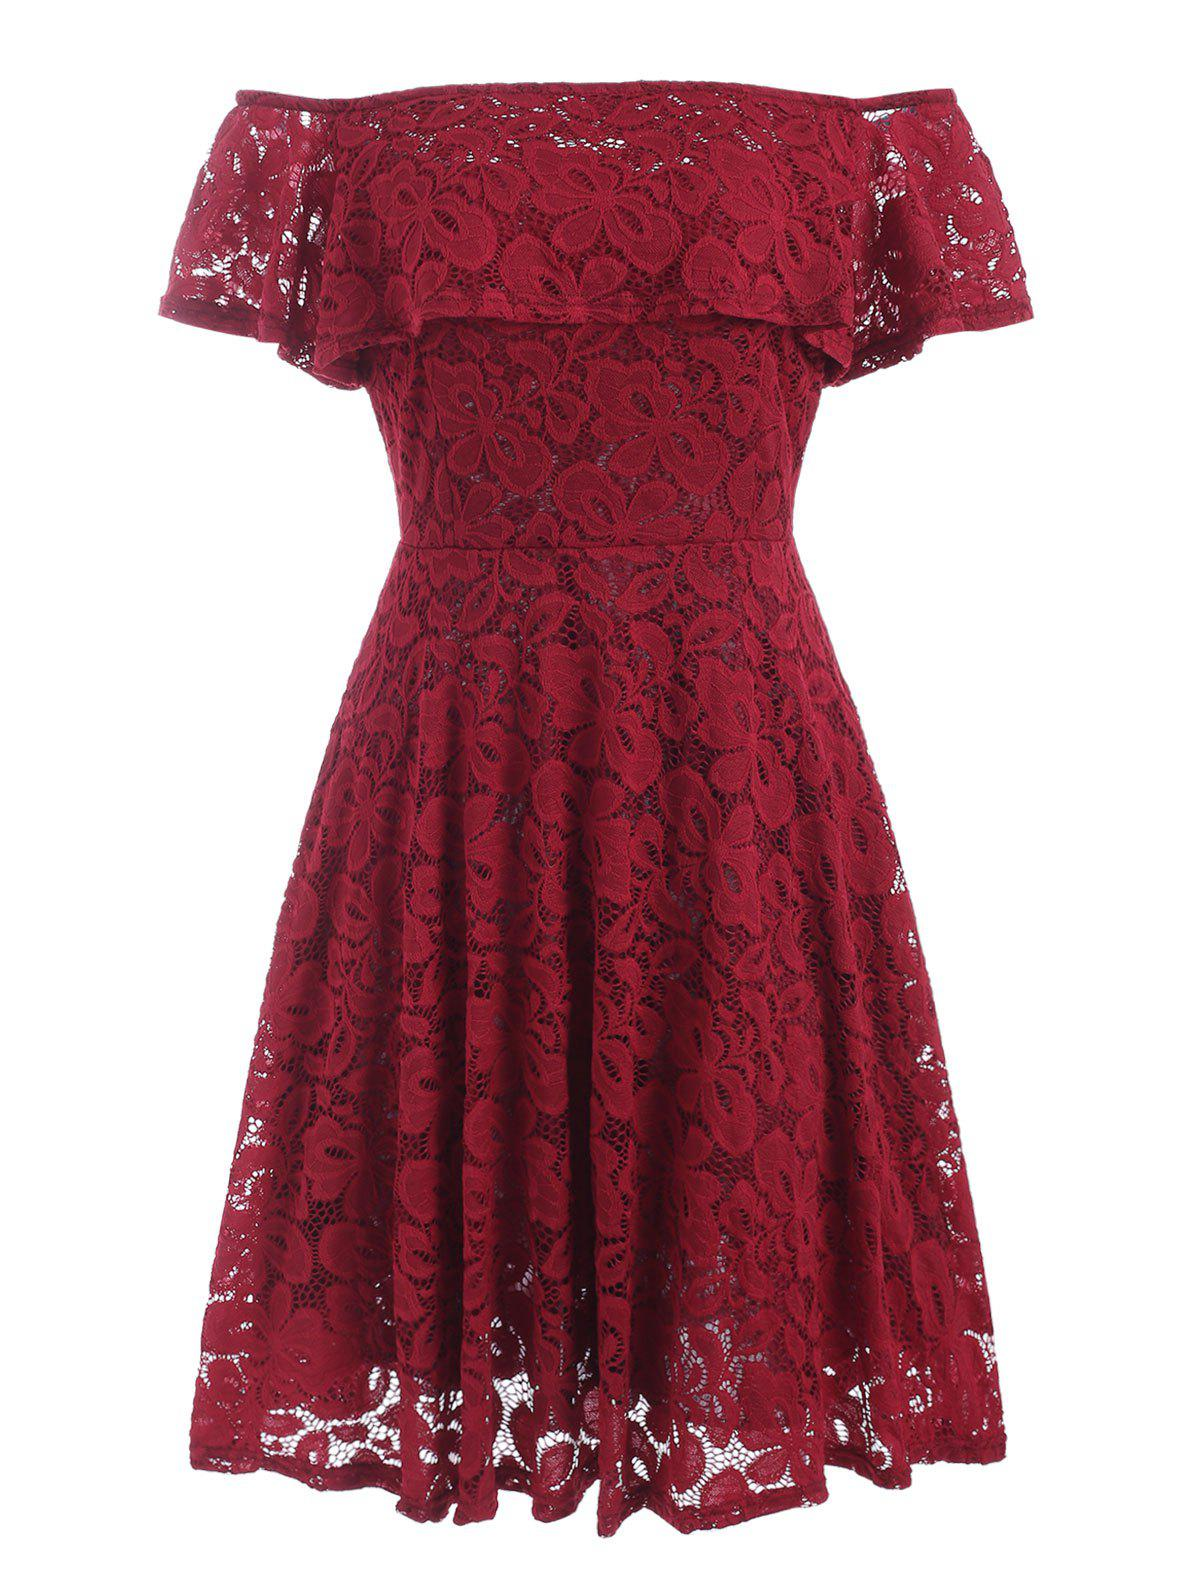 Off Shoulder Ruffles Lace Dress - RED WINE M